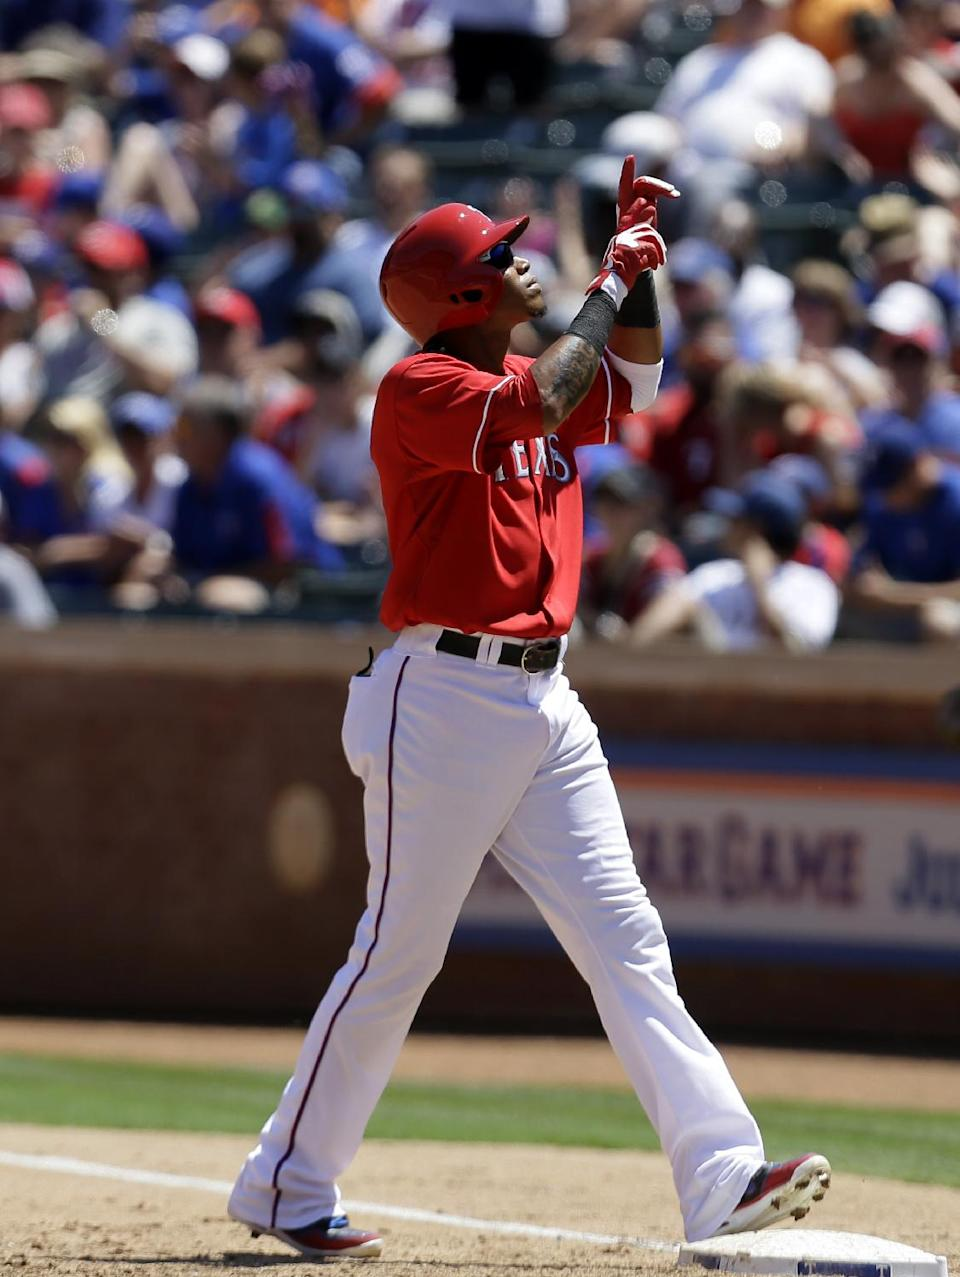 Texas Rangers' Engel Beltre points skyward after hitting for a single off a pitch from Cincinnati Reds' Mat Latos in the third inning of a baseball game Sunday, June 30, 2013, in Arlington, Texas. (AP Photo/Tony Gutierrez)